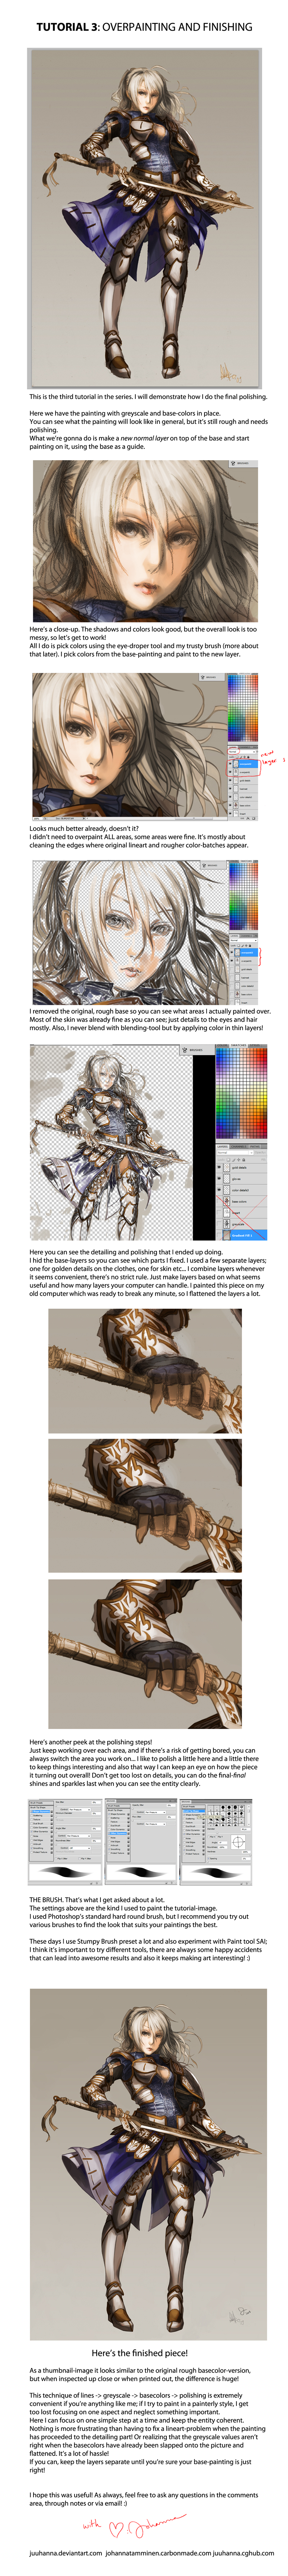 TUTORIAL 3: Overpainting and Finishing by juuhanna